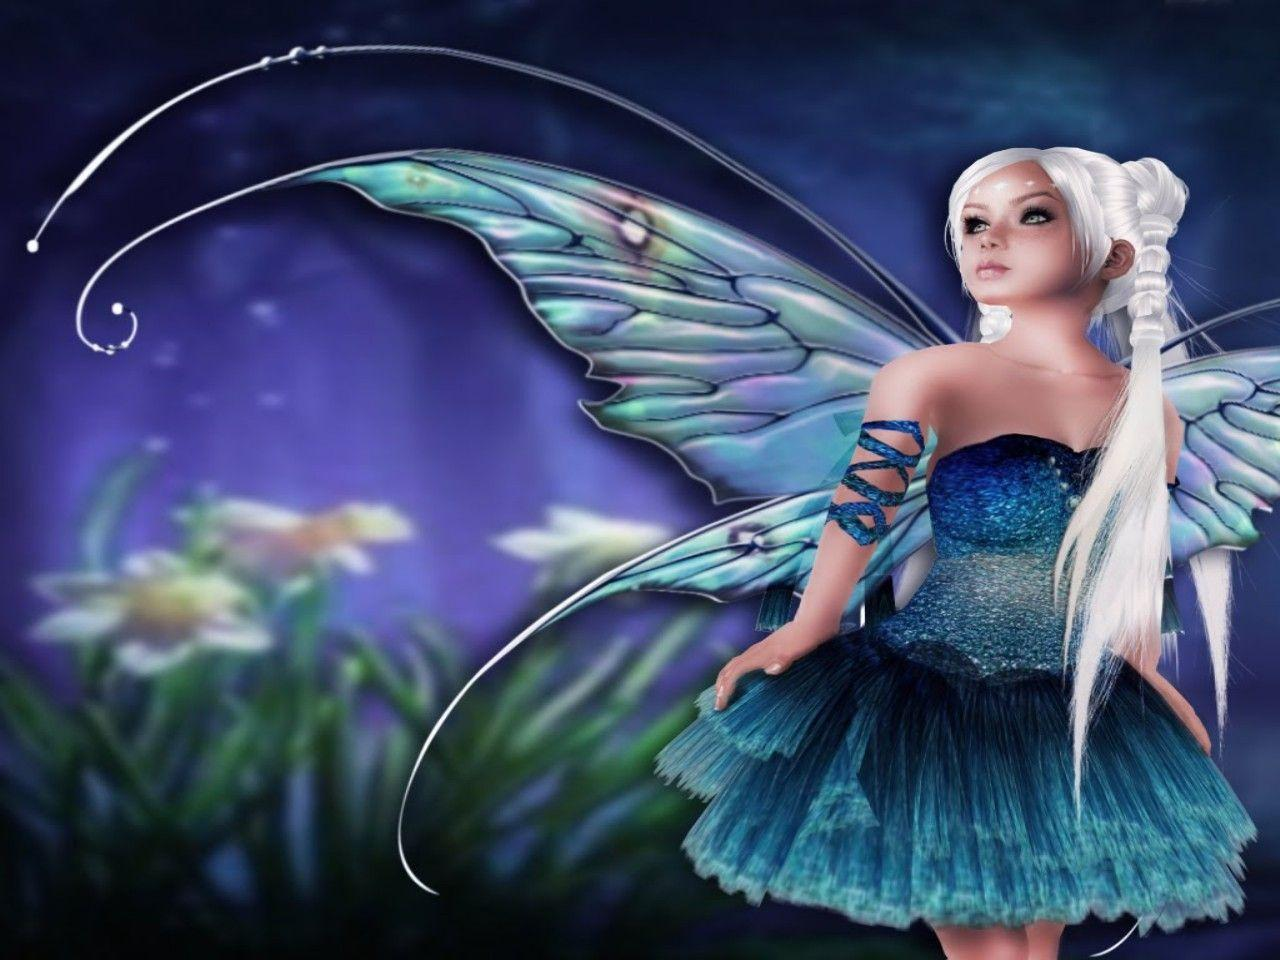 fairy computer wallpaper background - photo #32